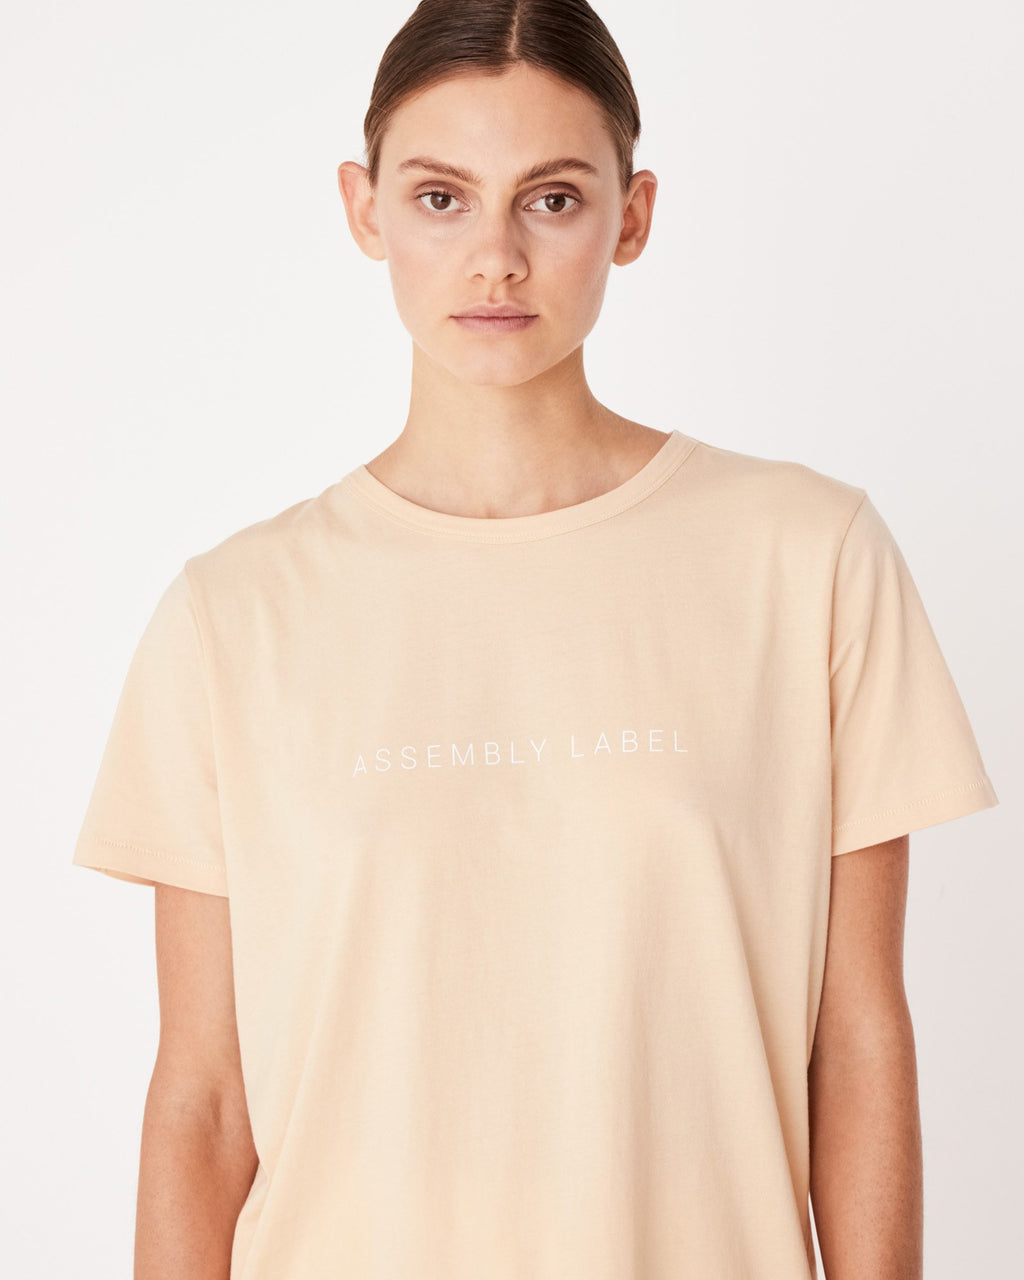 ASSEMBLY LABEL FINERY TEE